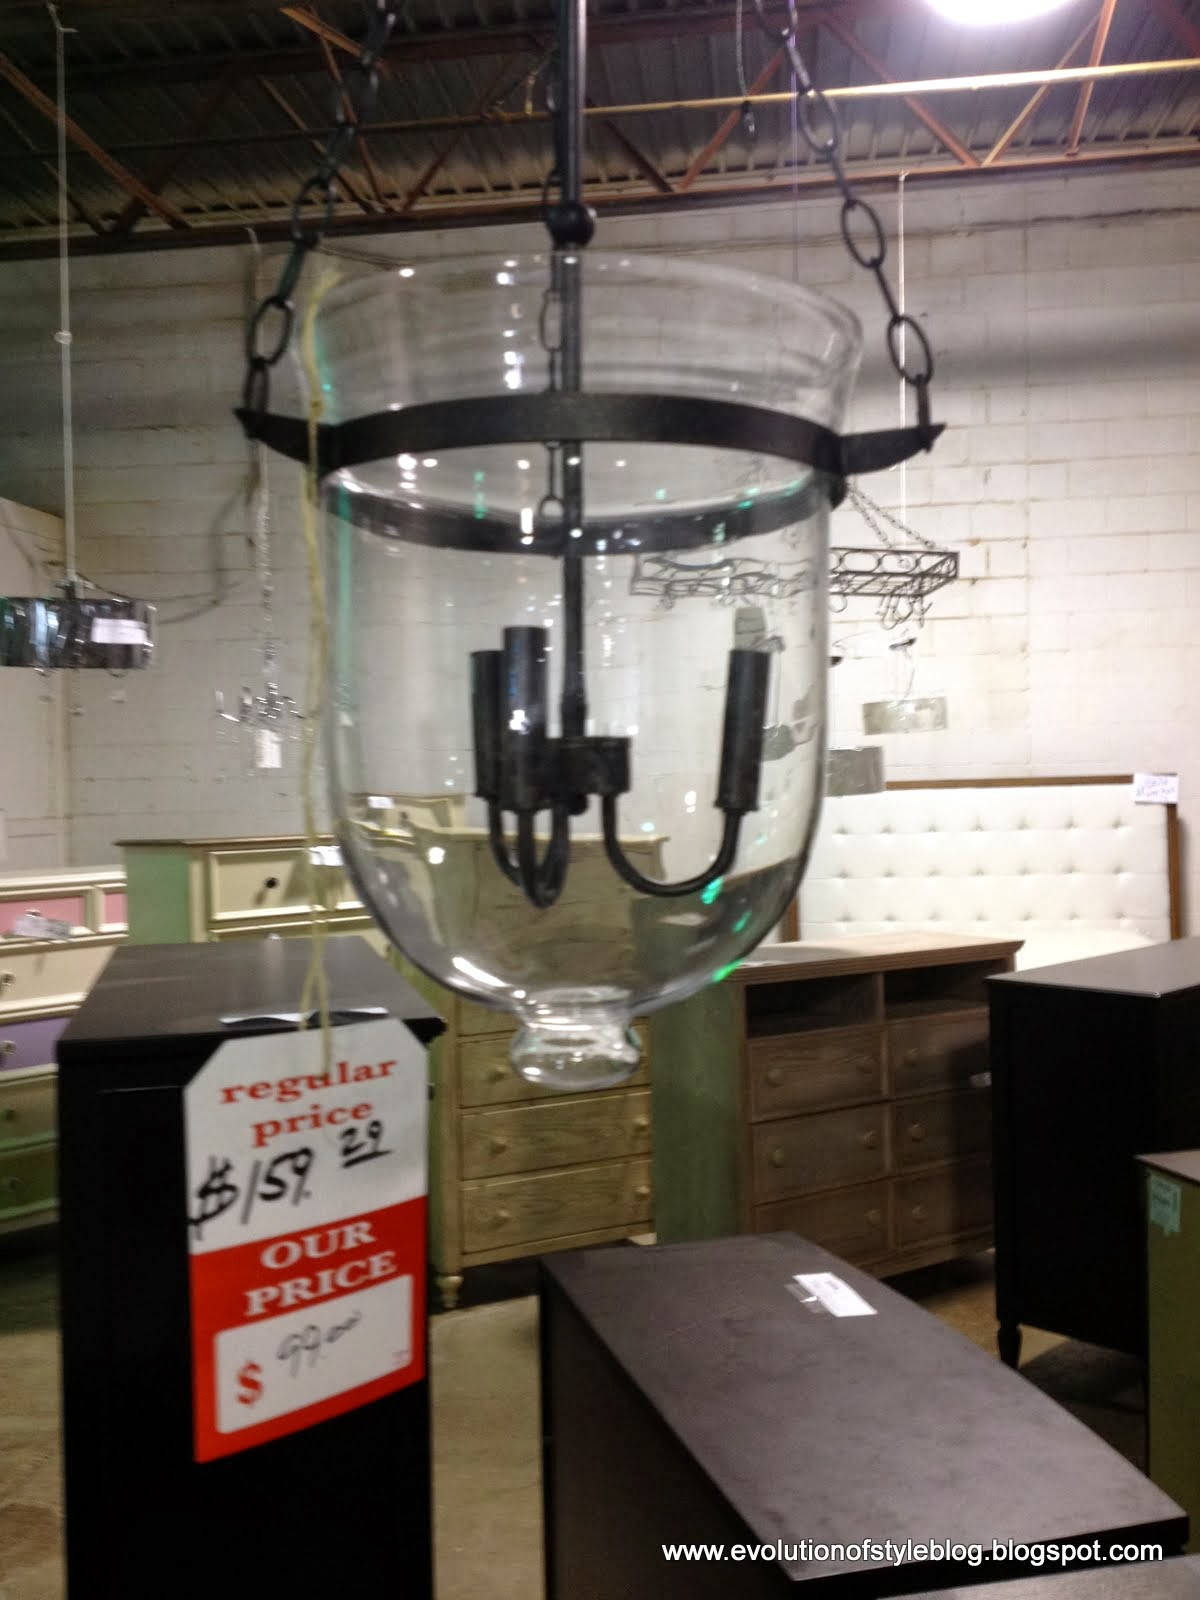 Pottery barn hundi lantern - And This Lantern Which Is Really Similar To The Hundi Lantern That Is Sold At Pottery Barn Was A Mere 99